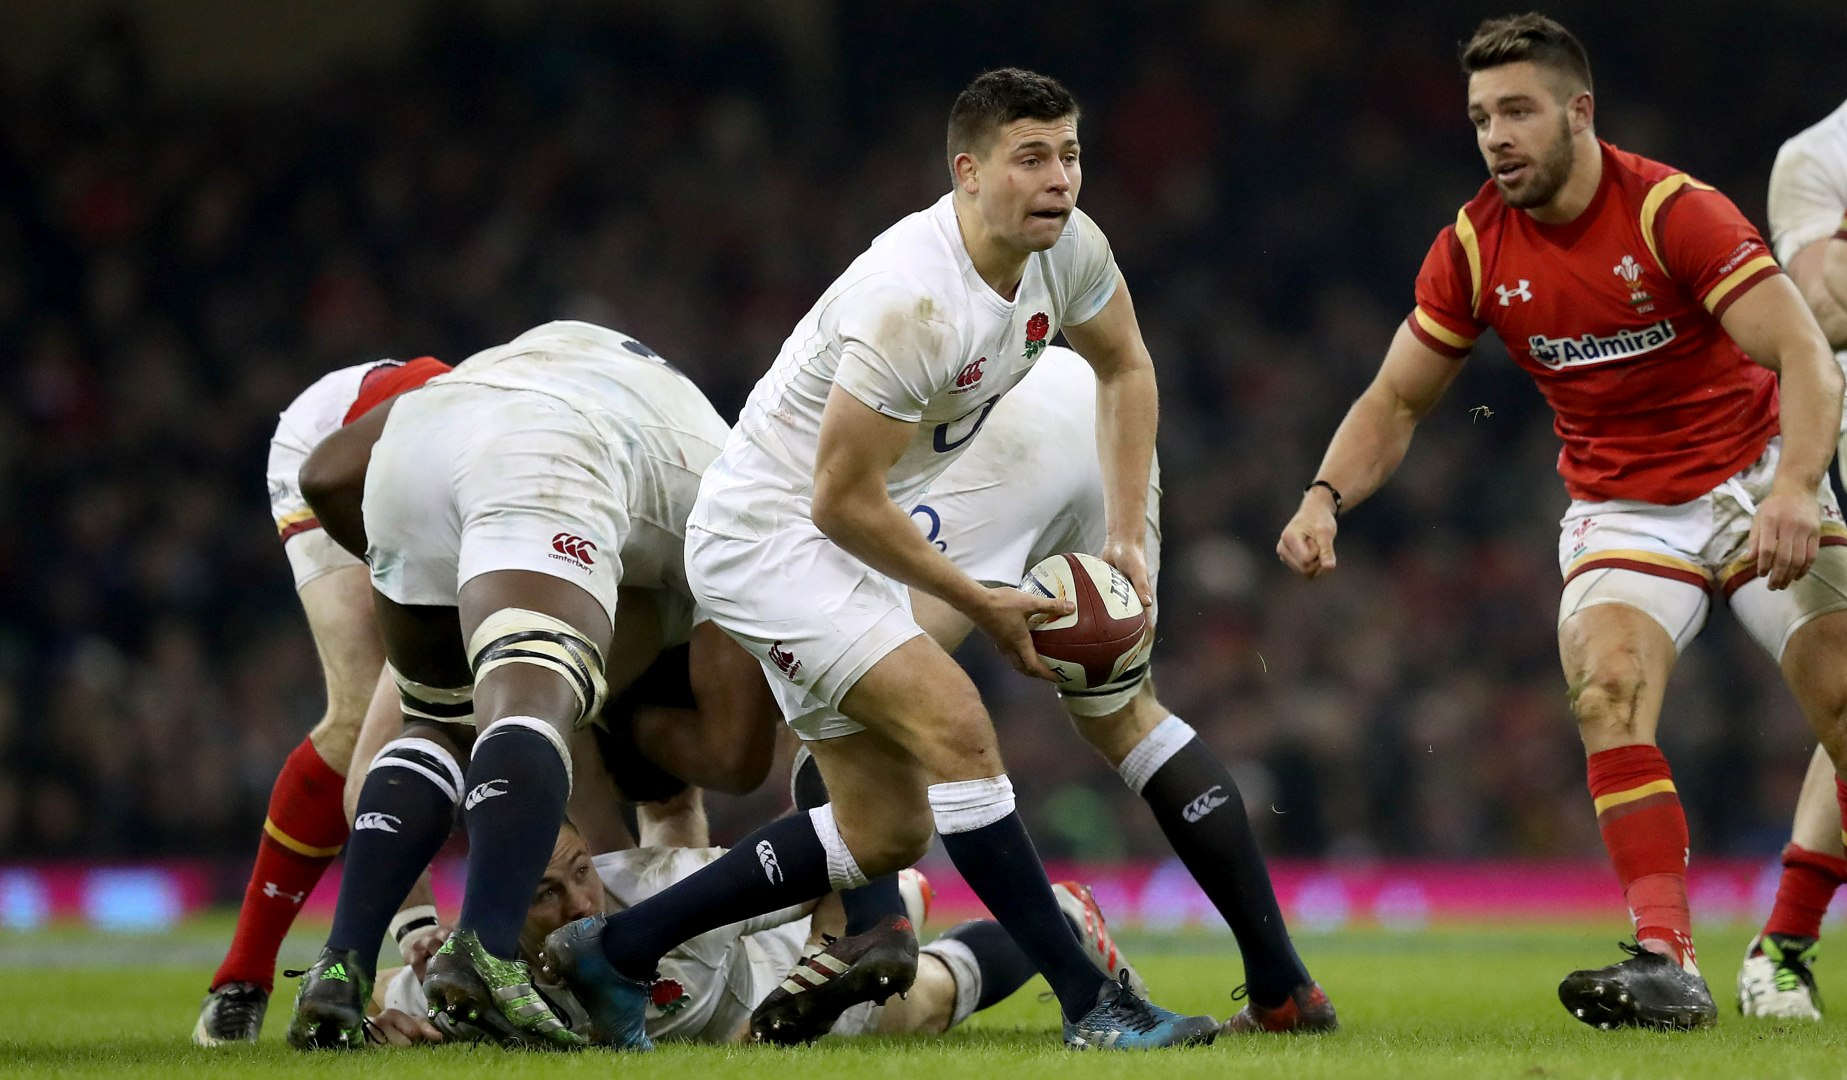 LionsWatch: Scrum-half competition heating up